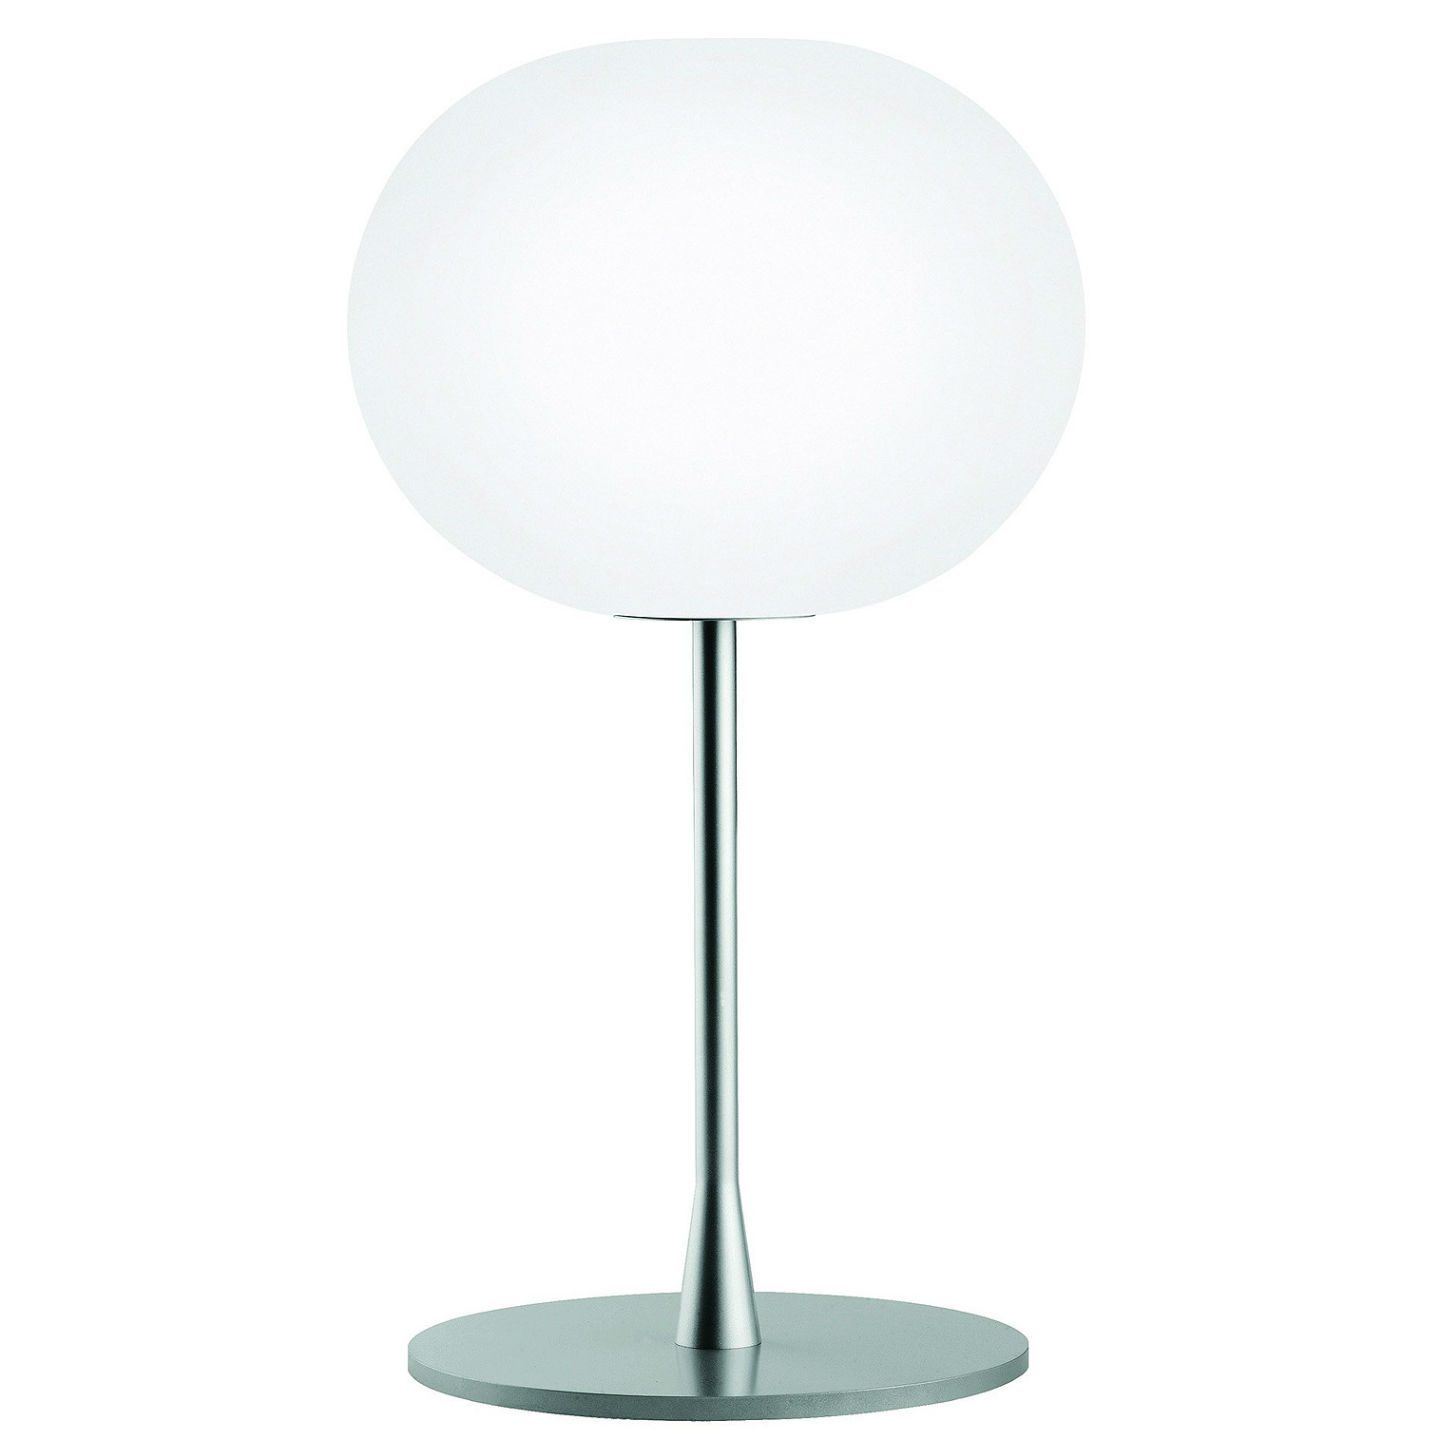 Glo Ball T1 Table Lamp 33cm E27 20W G9 HSGS - white opal